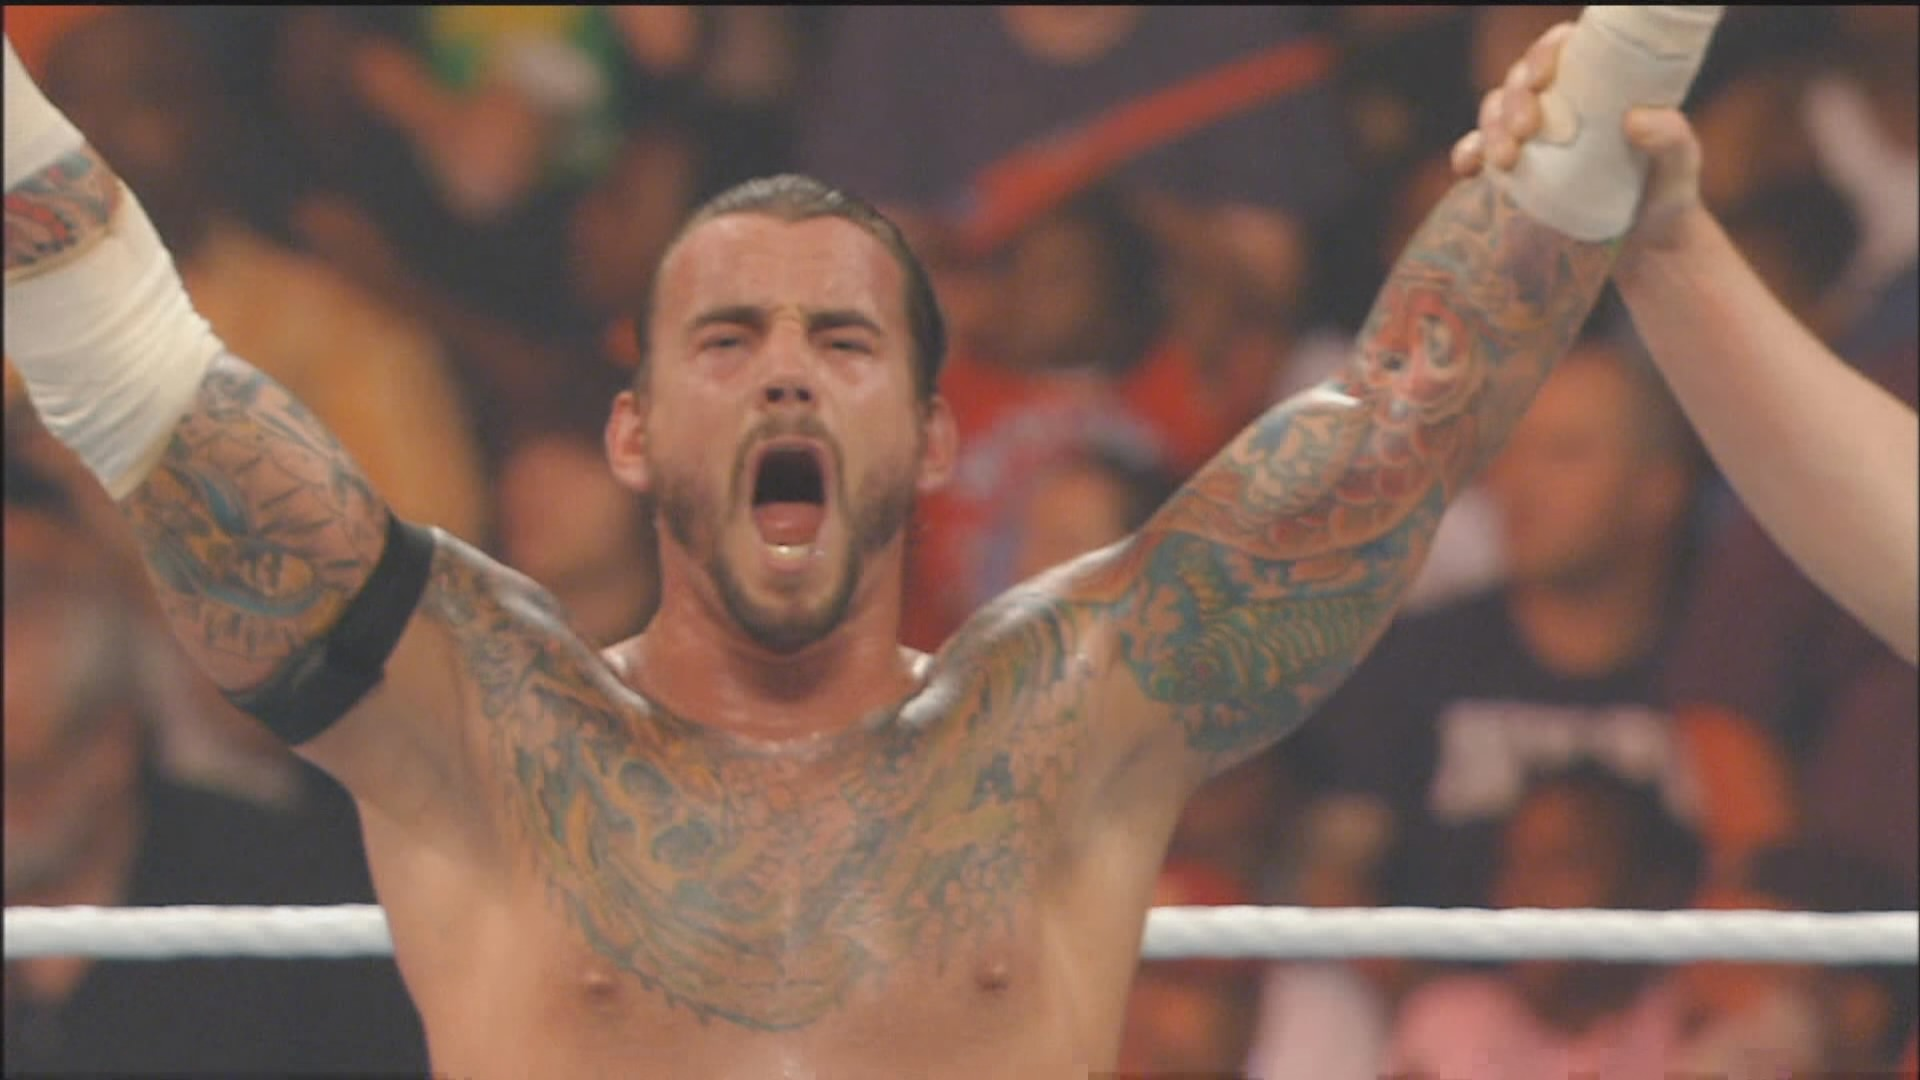 CM Punk the best in the World.